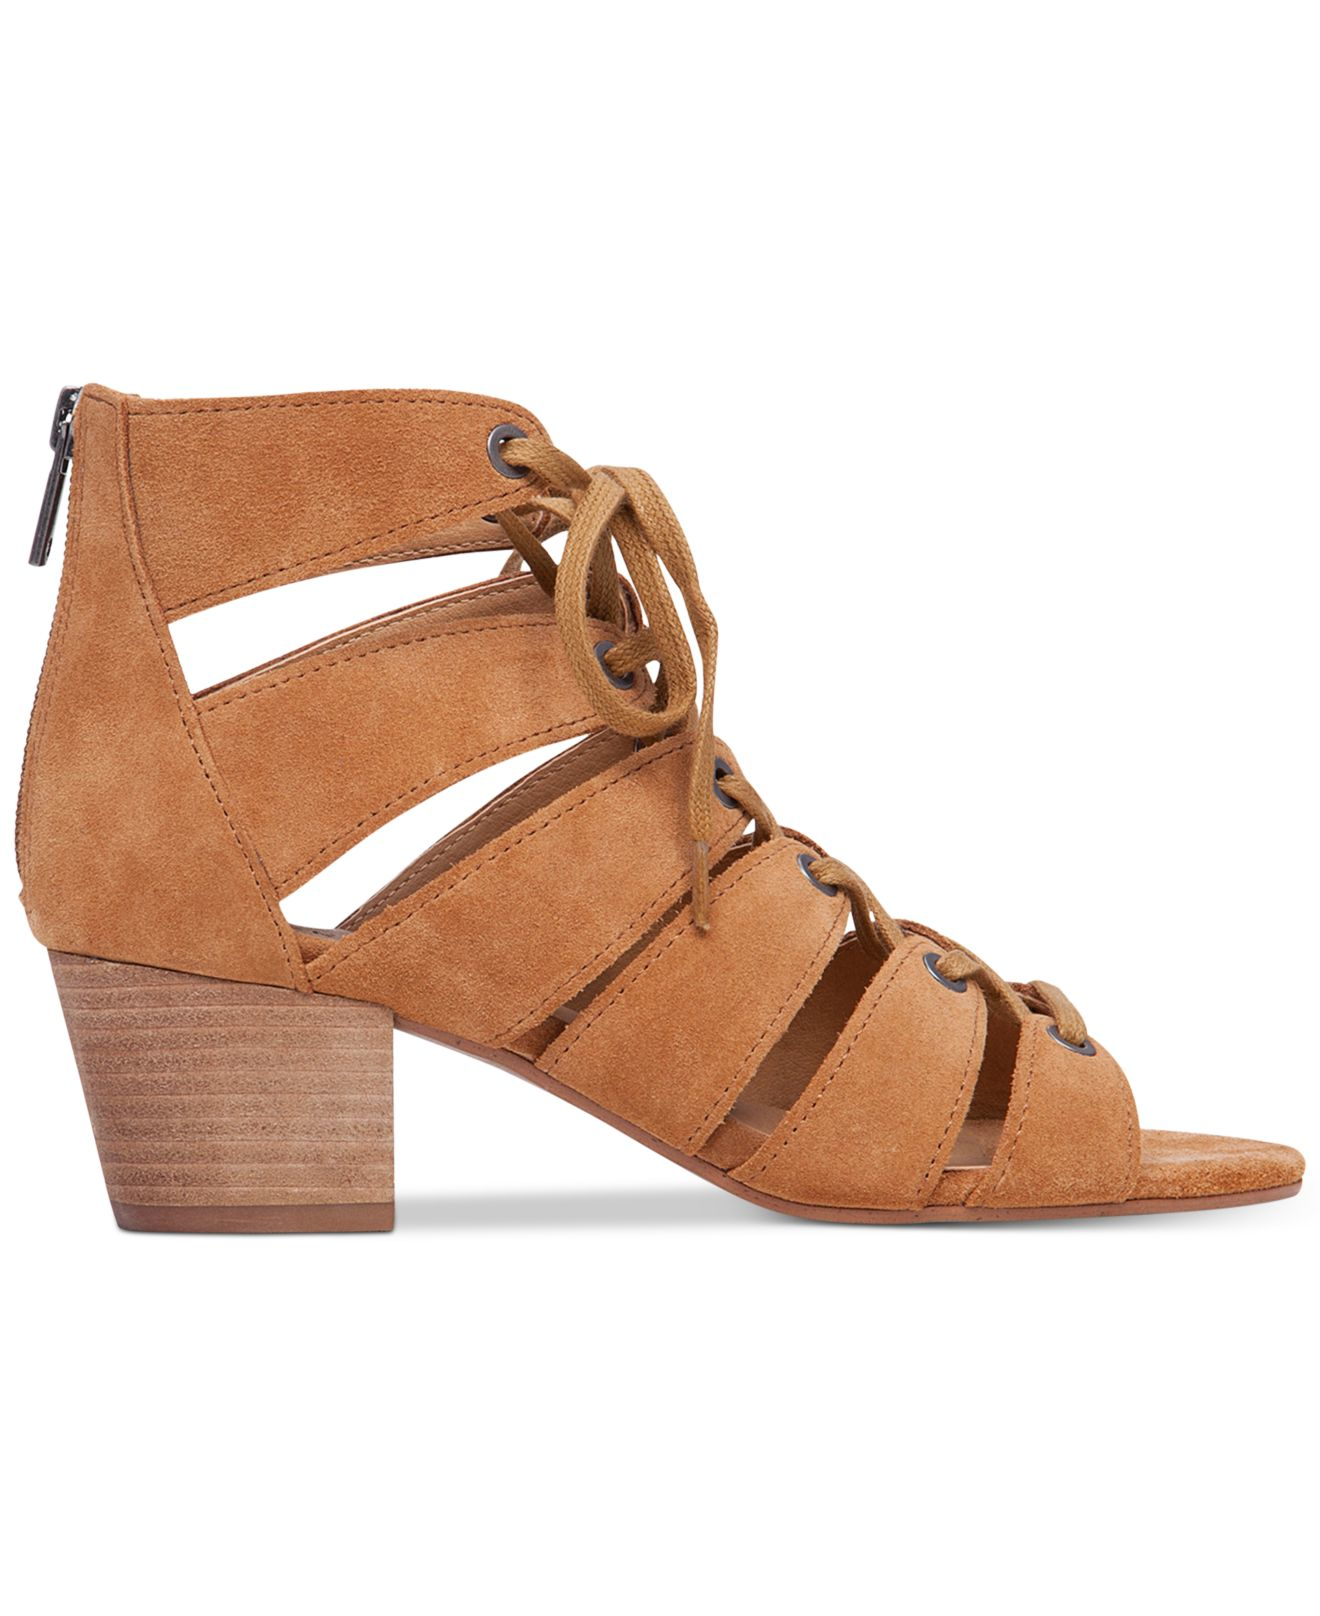 51d8a6a2cc69 Lyst - Lucky Brand Women s Genevie Ghillie Lace Up Sandals in Brown